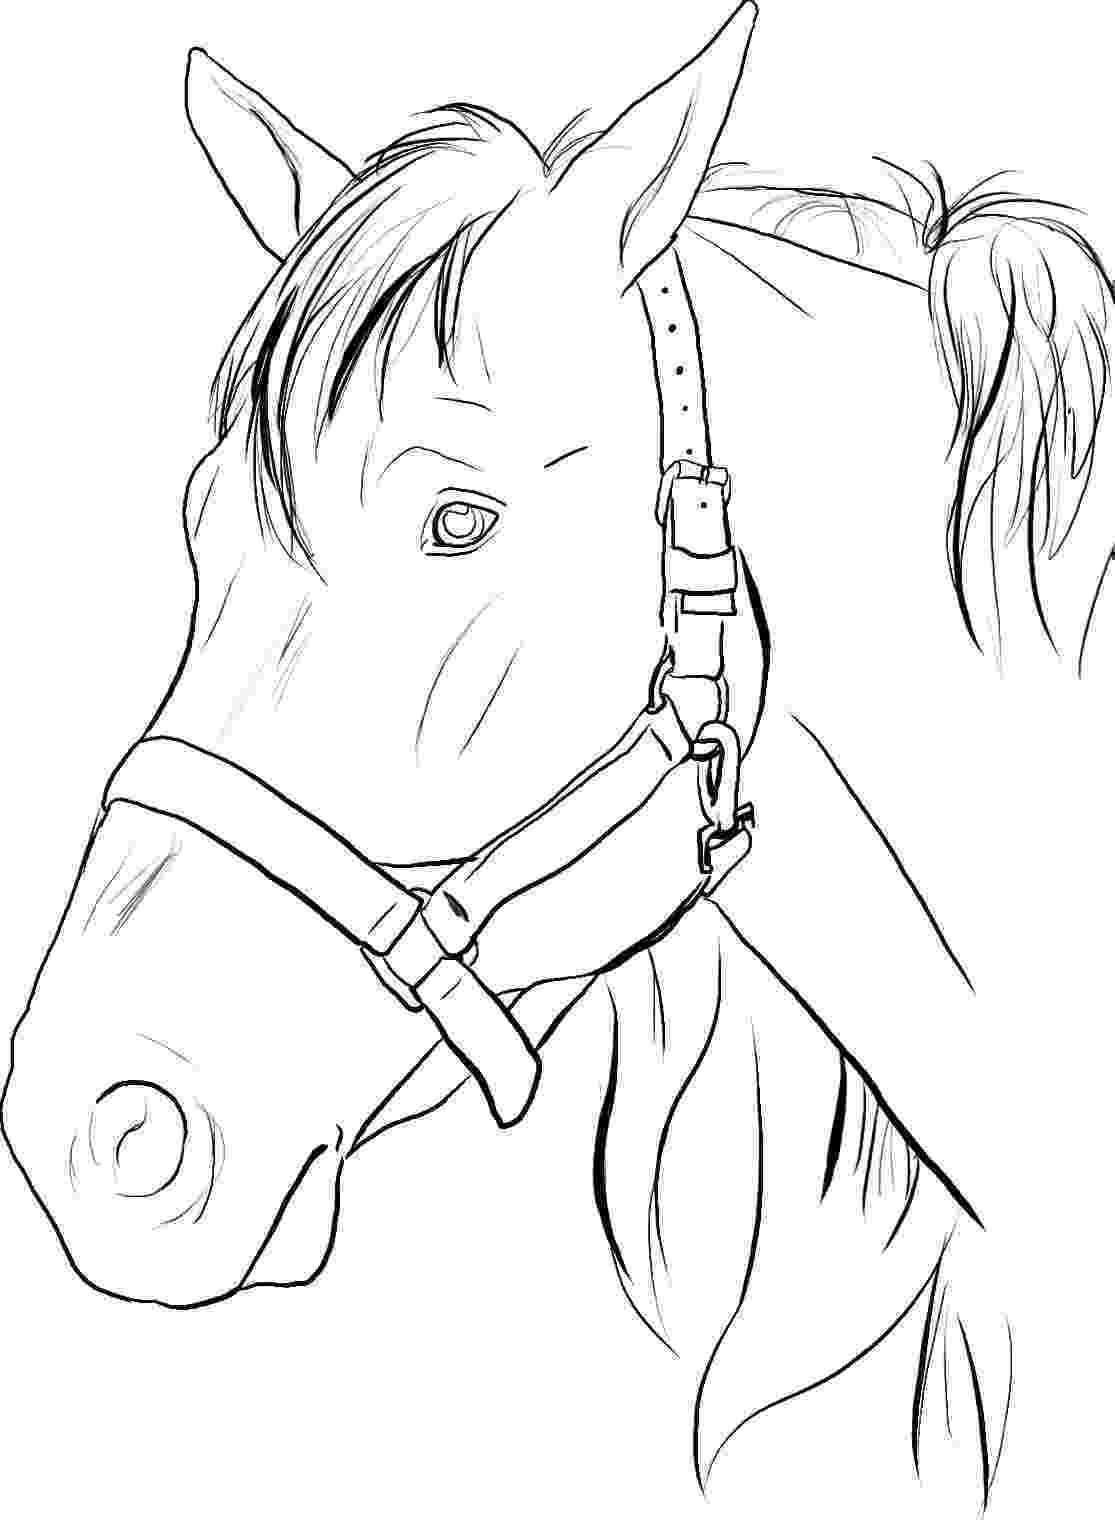 colouring horses free printable horseland coloring pages for kids 20185 colouring horses